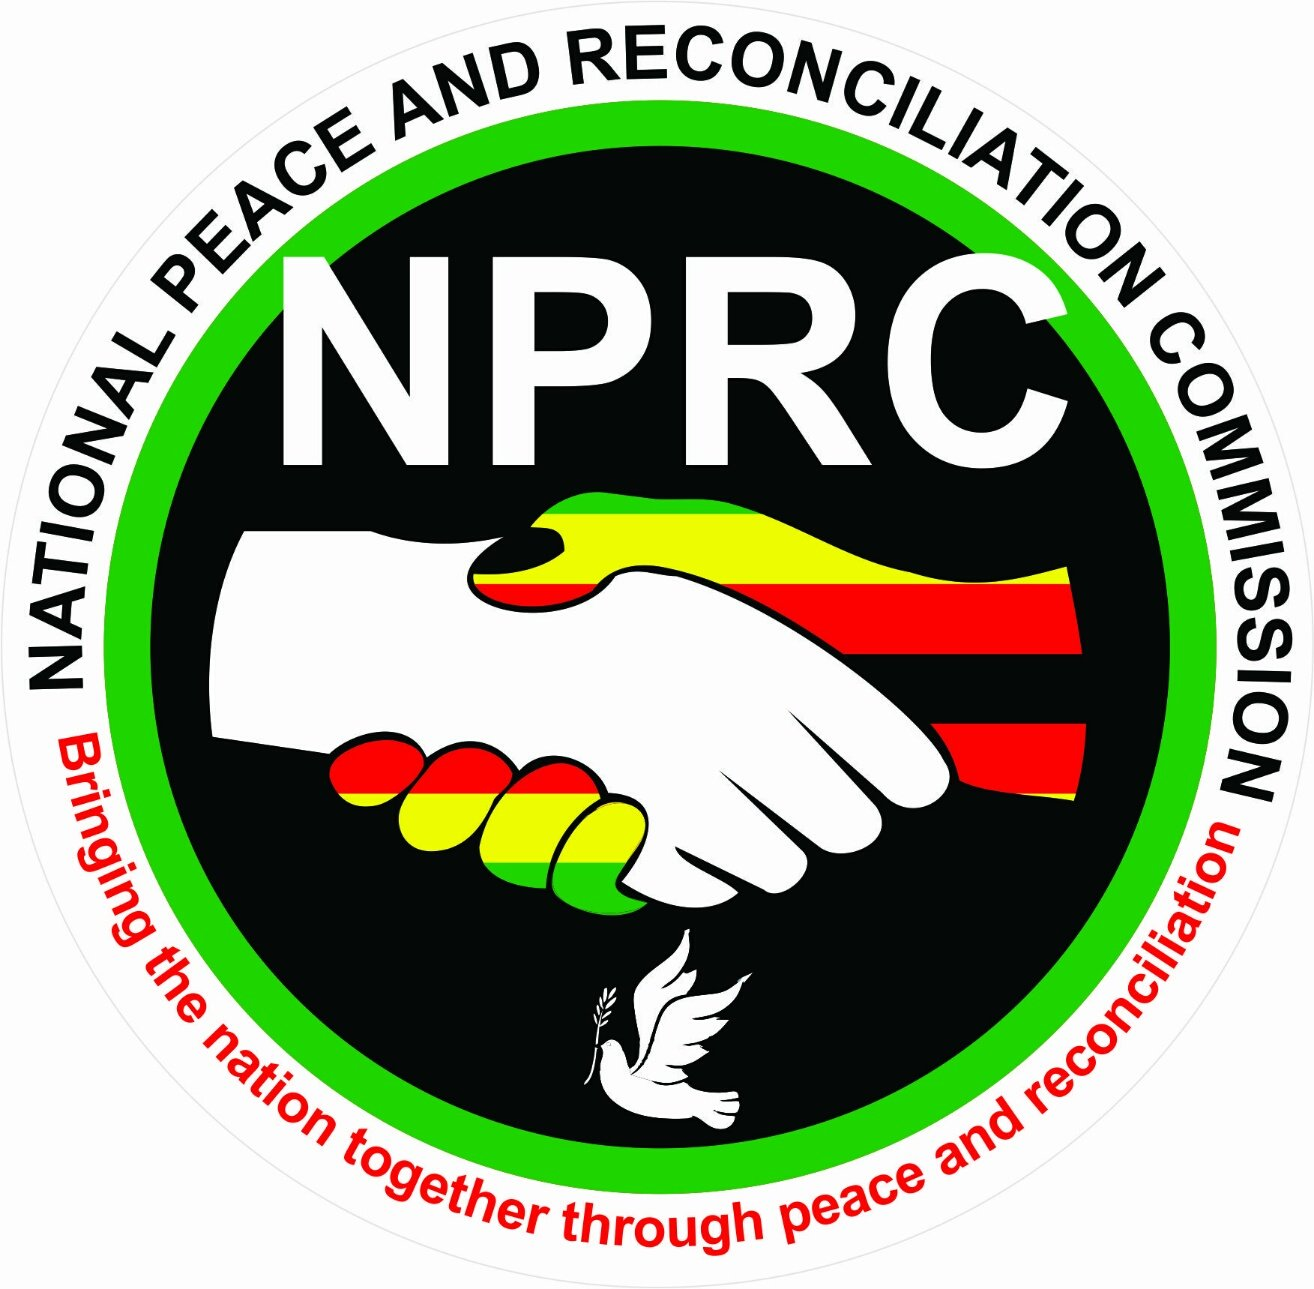 national peace and reconciliation commission nprc nprczim twitter